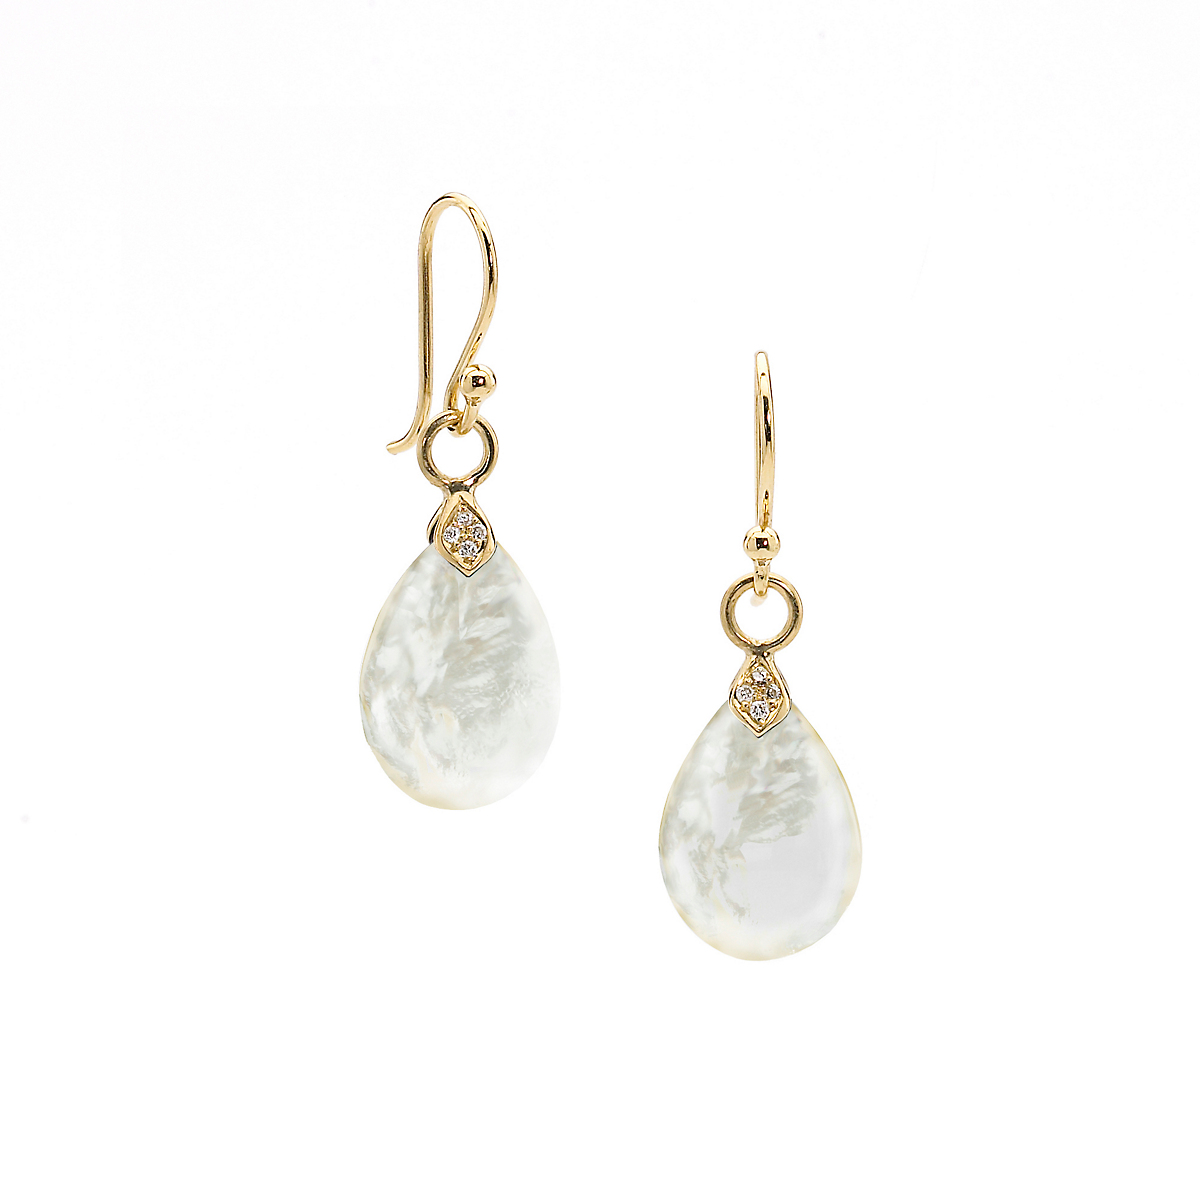 Elizabeth Showers Small Gold, Mother of Pearl & Diamond Eliza Earrings